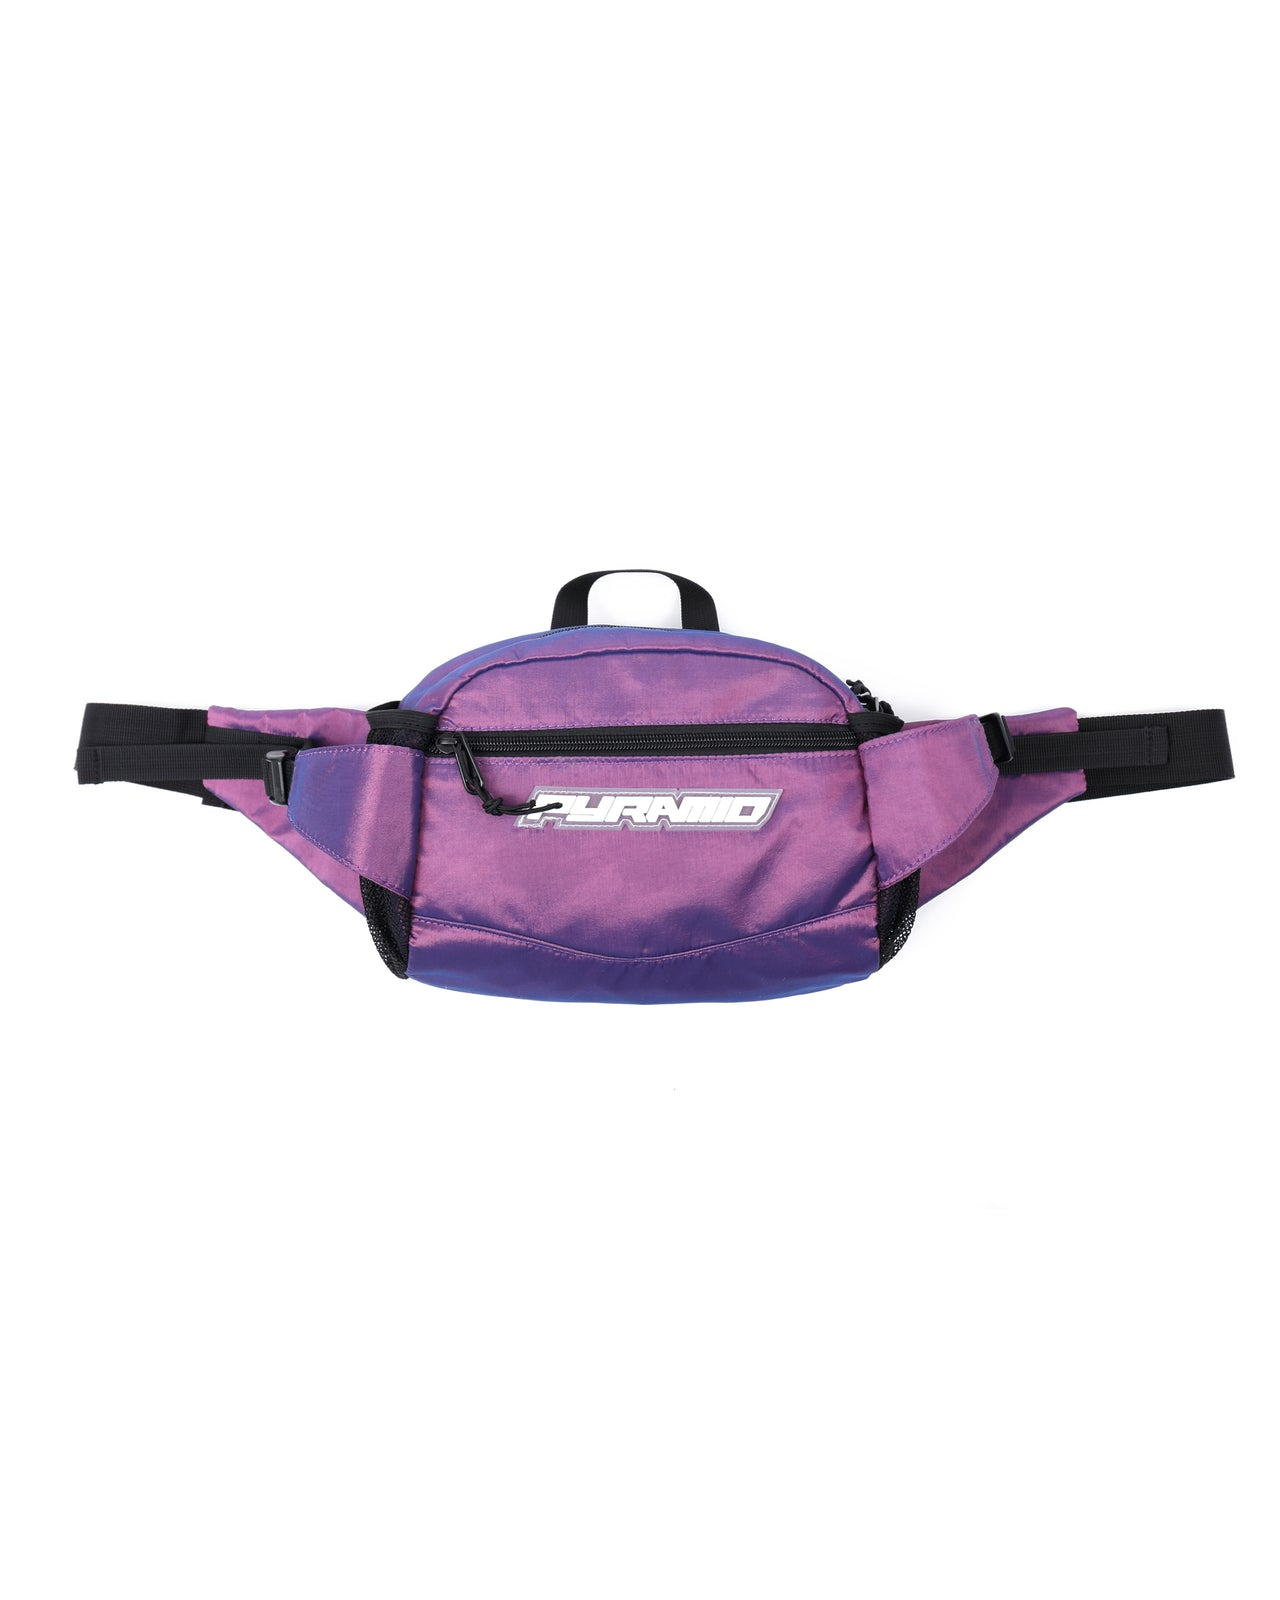 TECH SLING BAG - Colors: PURPLE